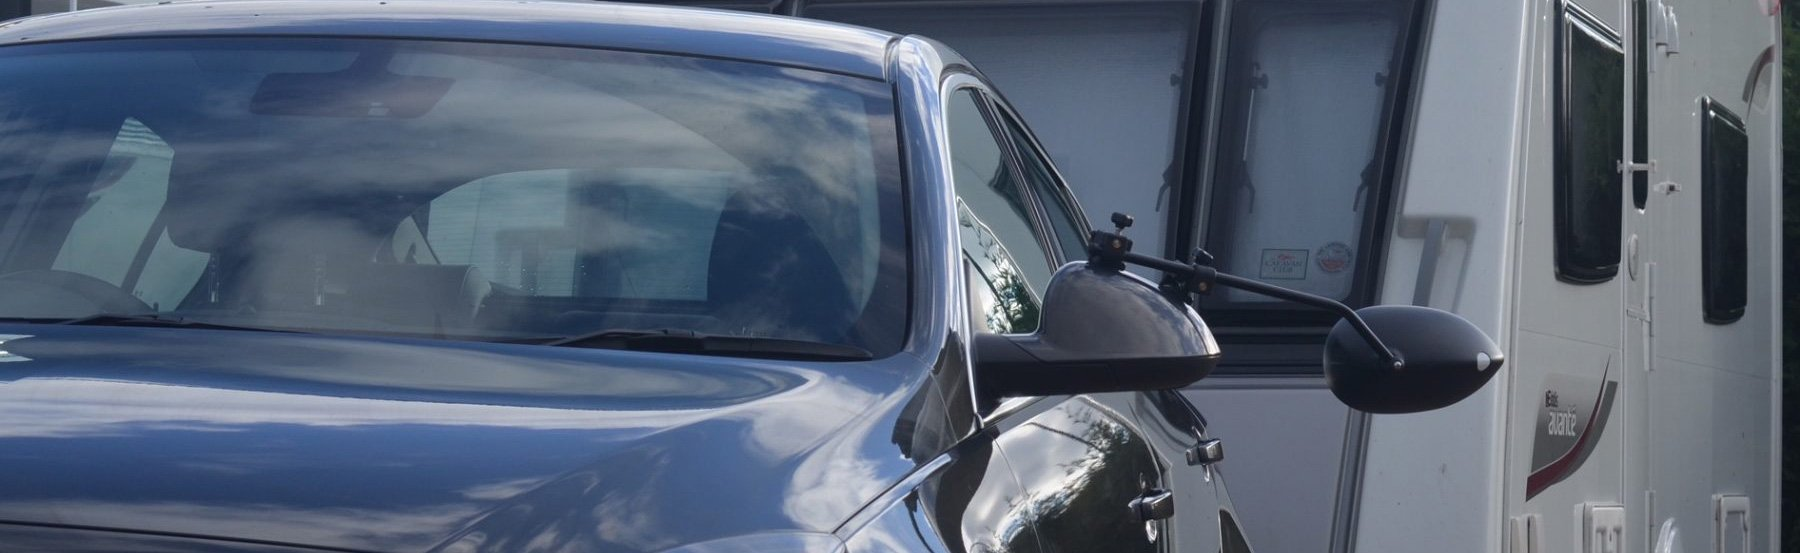 Best Towing Mirrors